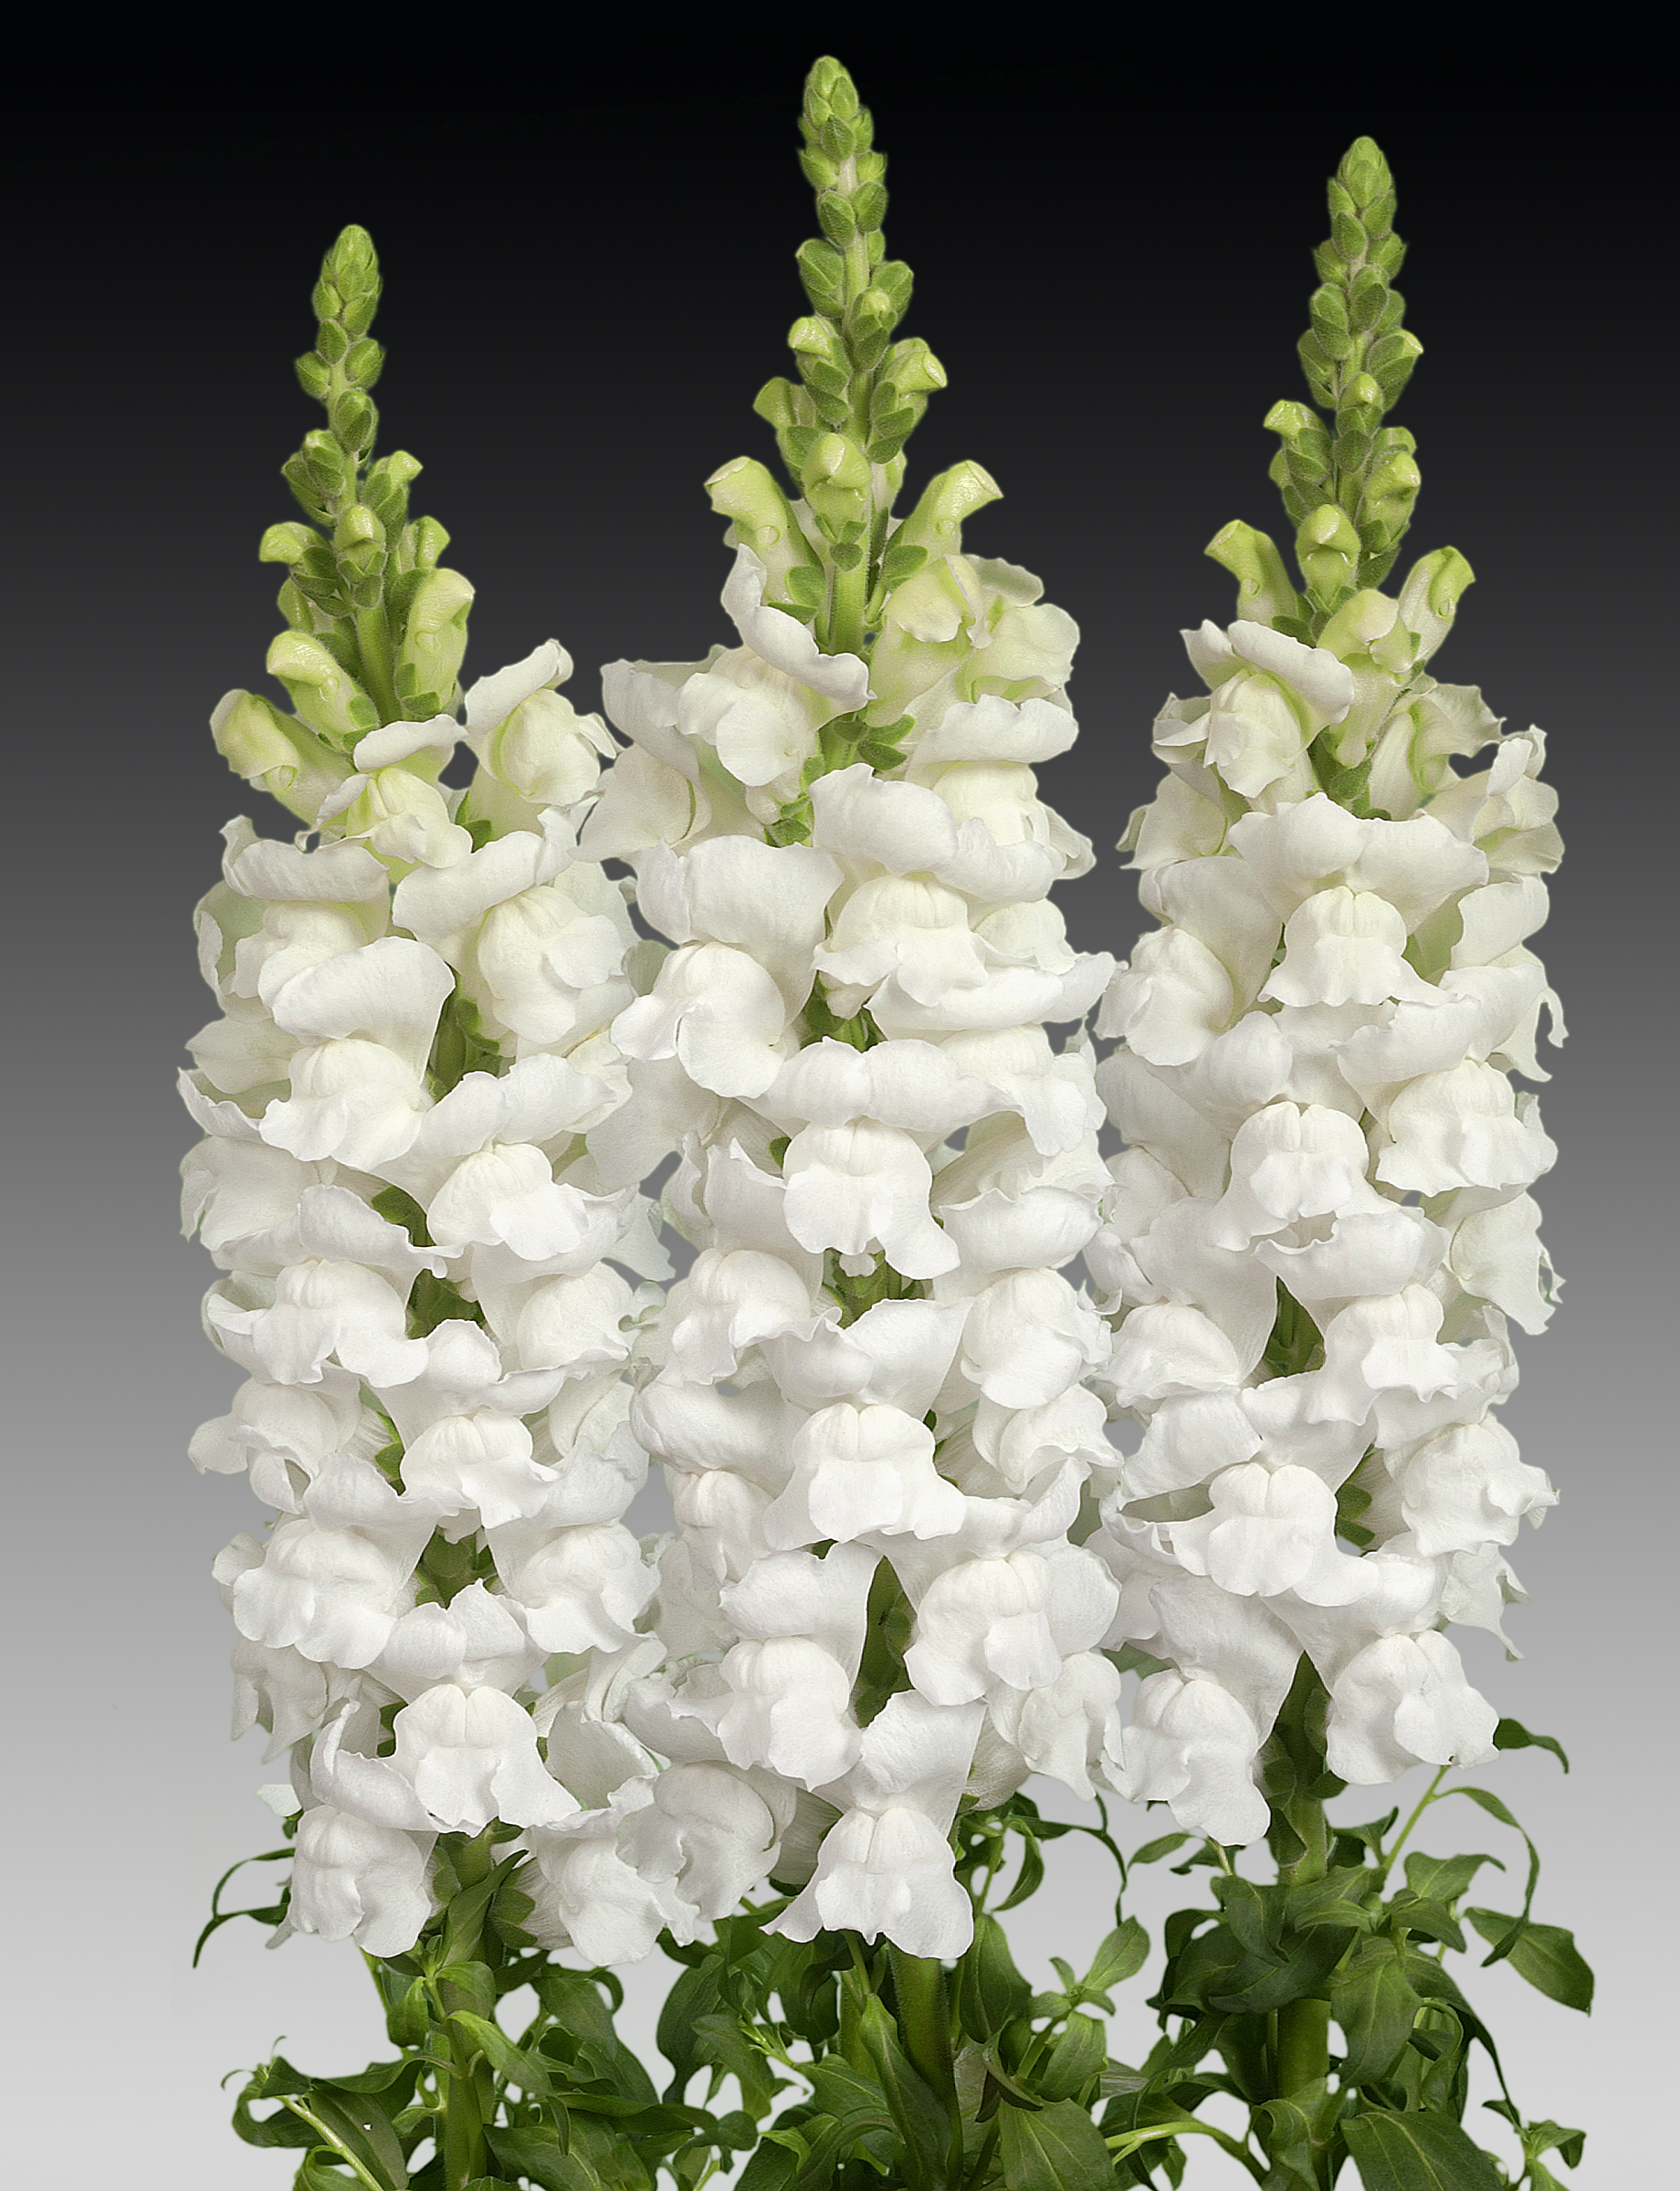 Costa Midly White, Antirrhinum - Noordam Plants